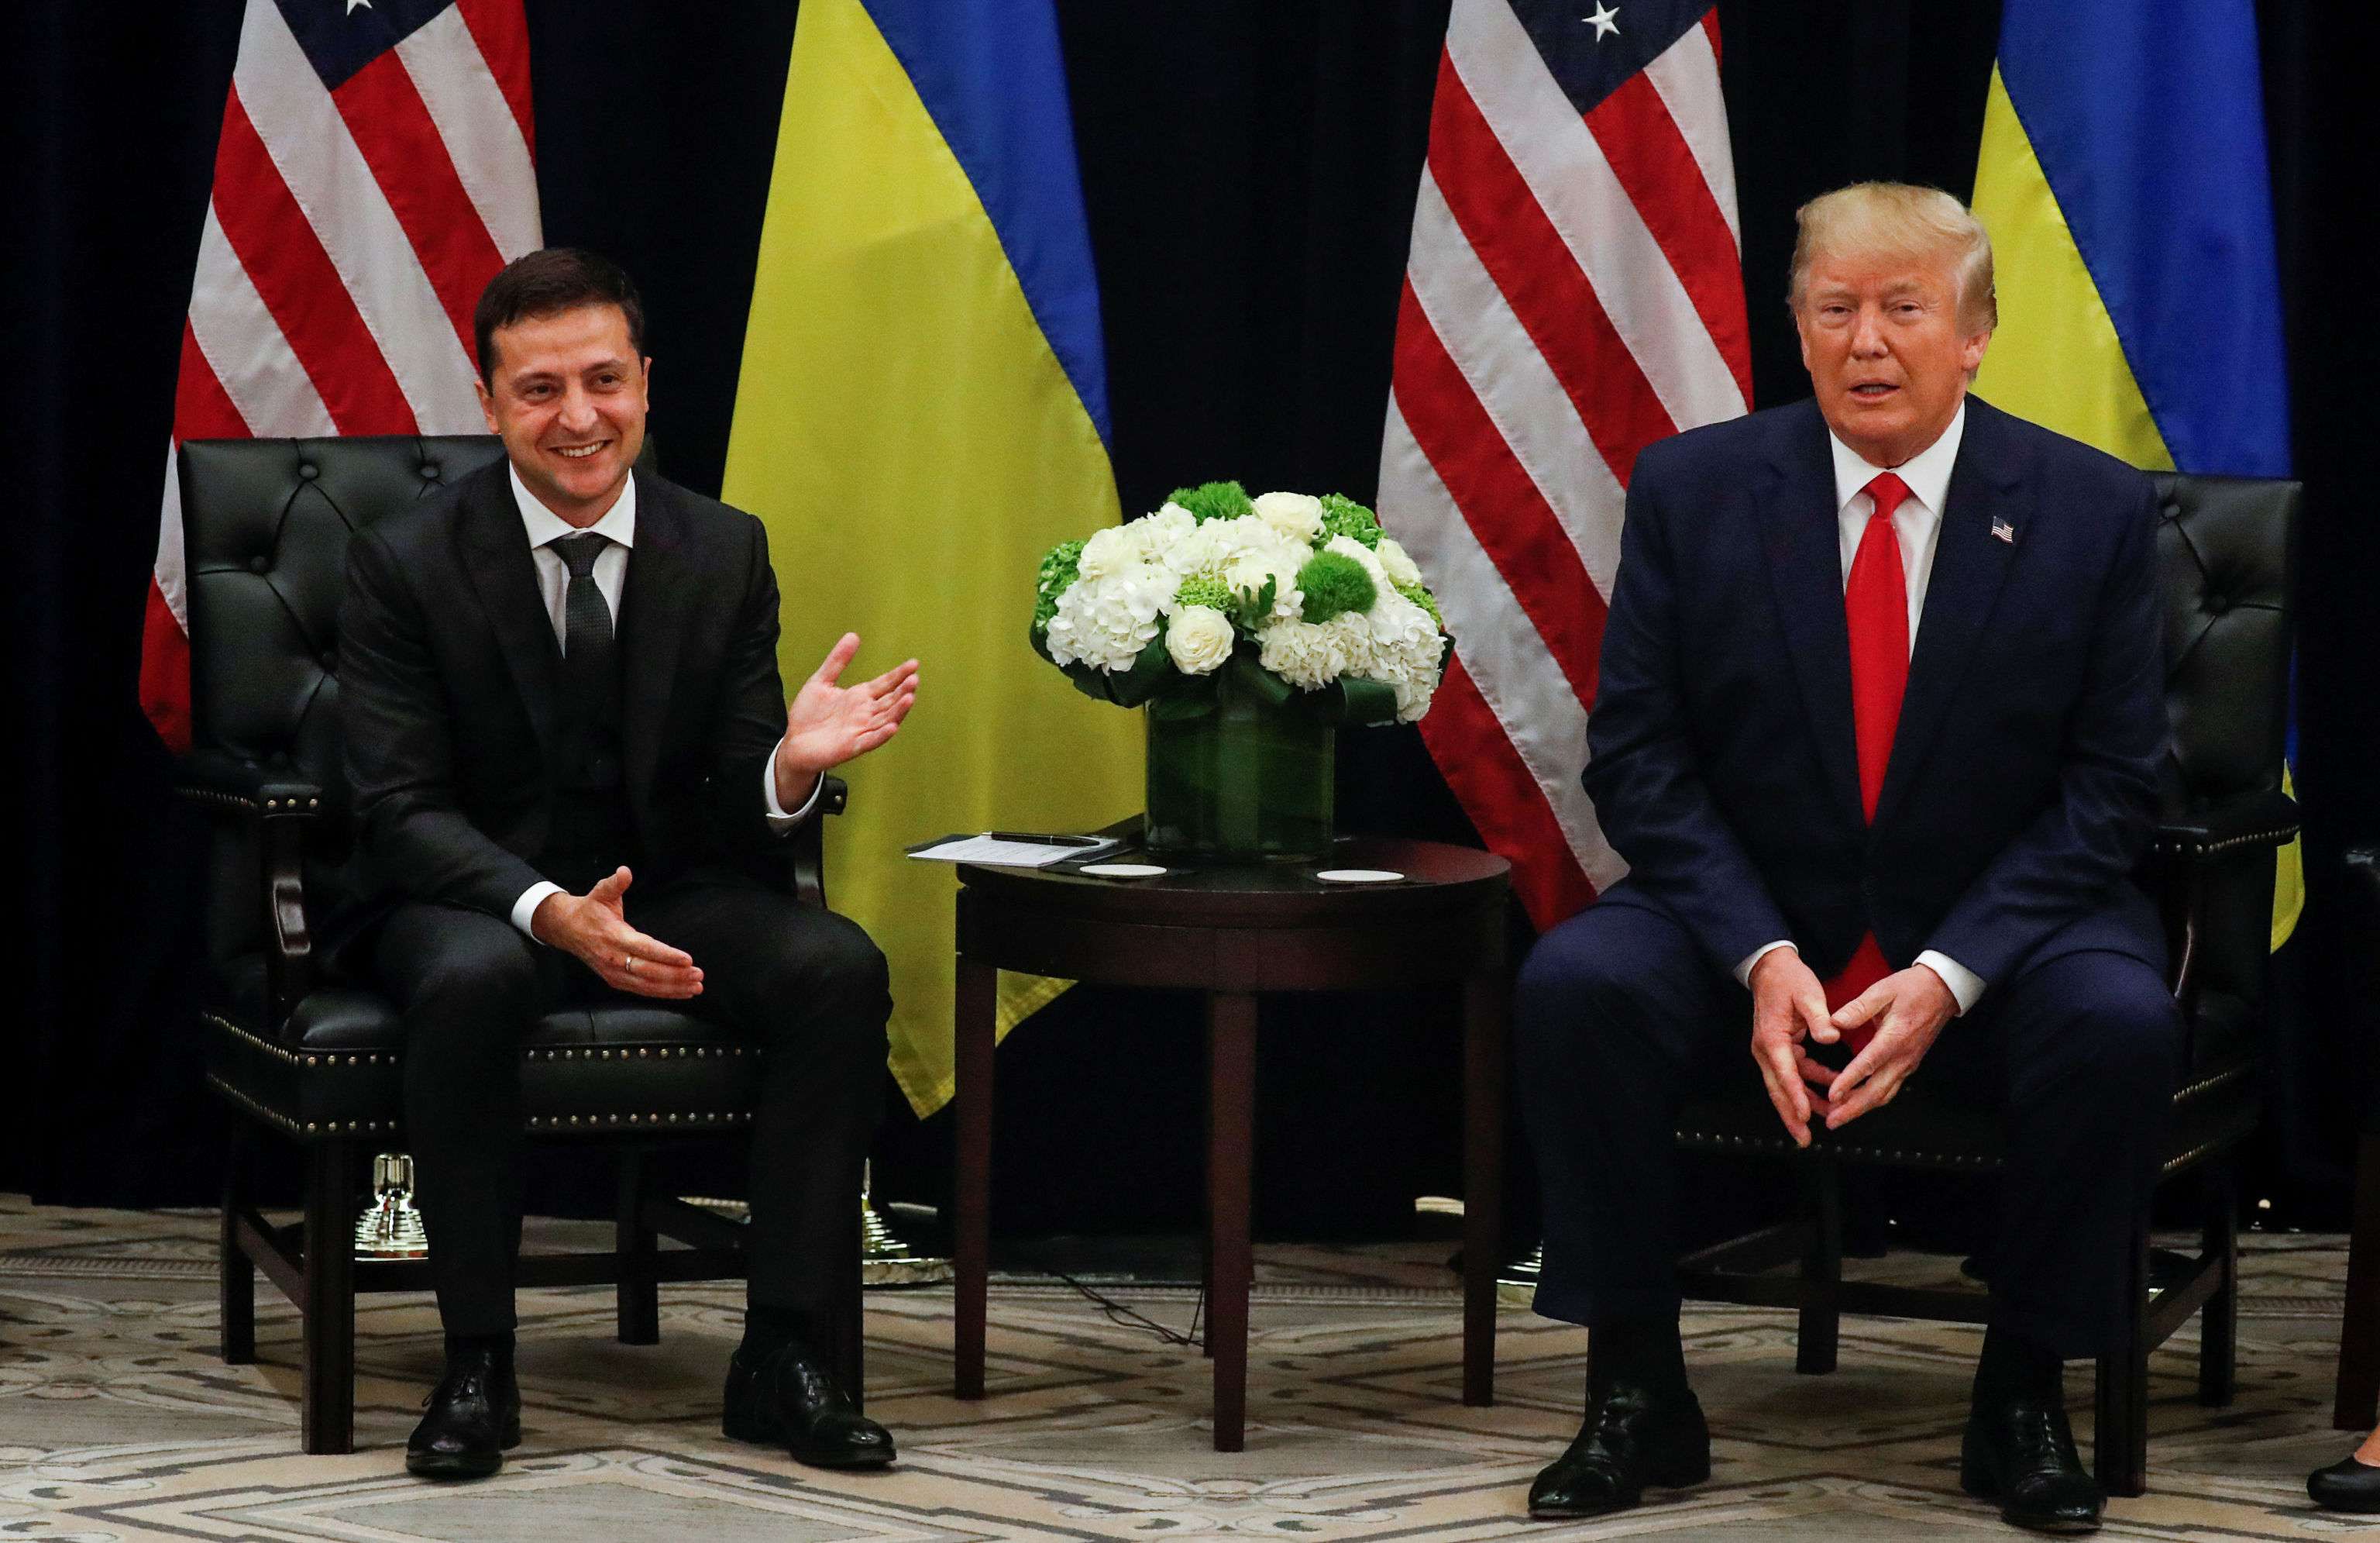 U.S. President Donald Trump listens during a bilateral meeting with with Ukraine's President Volodymyr Zelensky on the sidelines of the 74th session of the United Nations General Assembly (UNGA) in New York City, New York, U.S., September 25, 2019